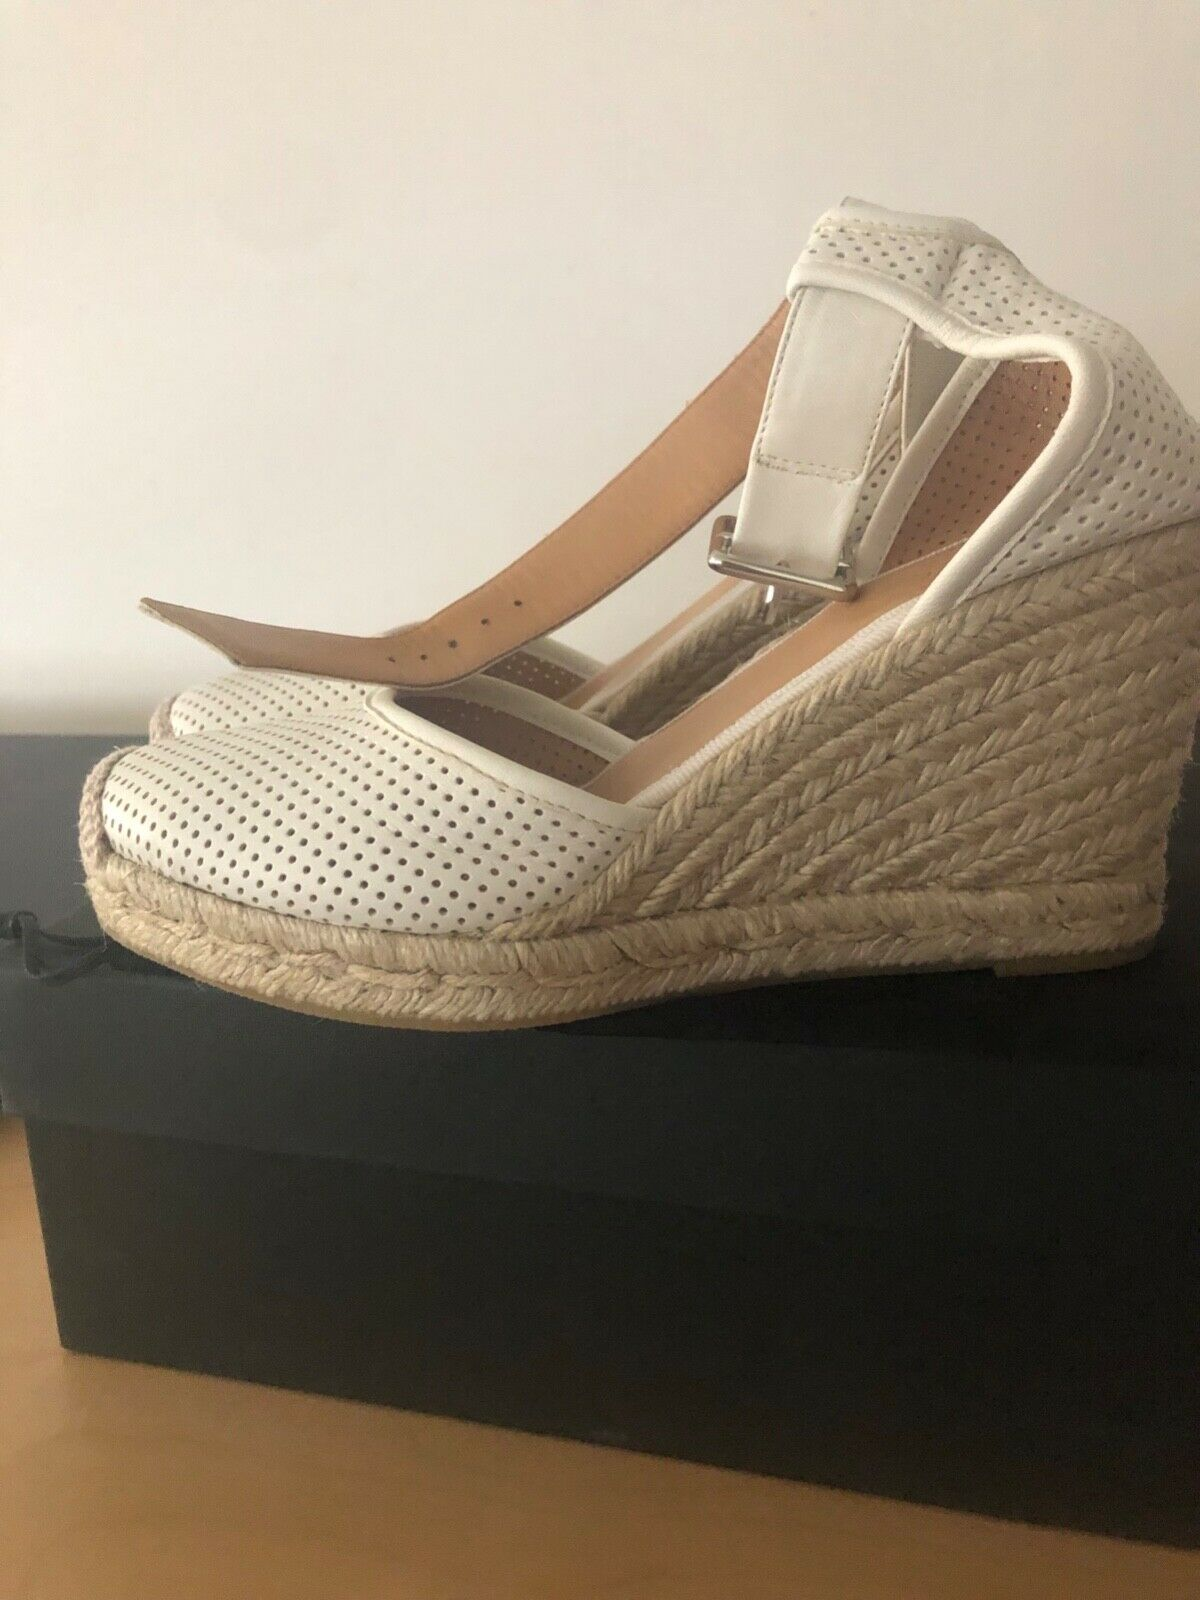 donna Marc by Marc Jacobs Dimensione 37 Summer Breeze Espadrilles Espadrilles Espadrilles Wedges retail  270 2261c9